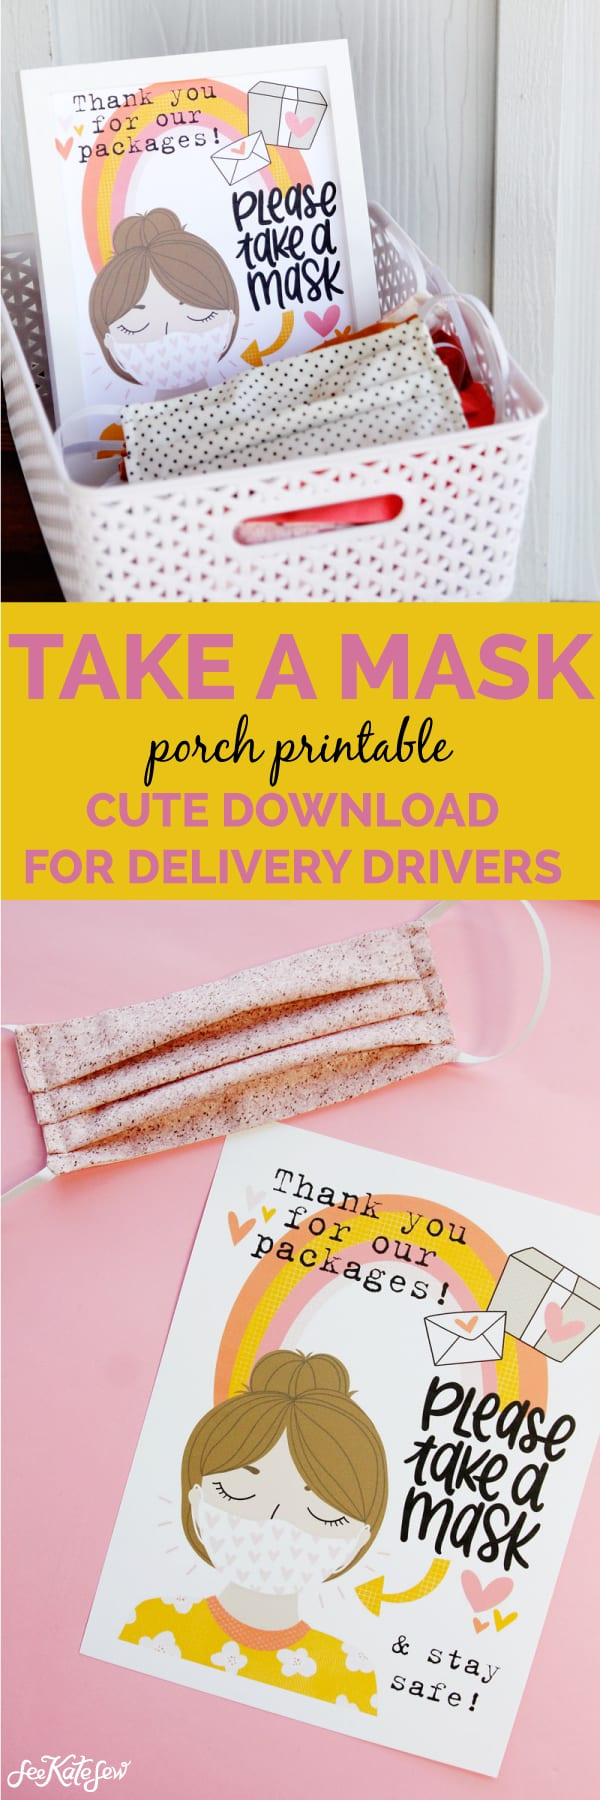 Take a Mask | Free Printable for Delivery Drivers